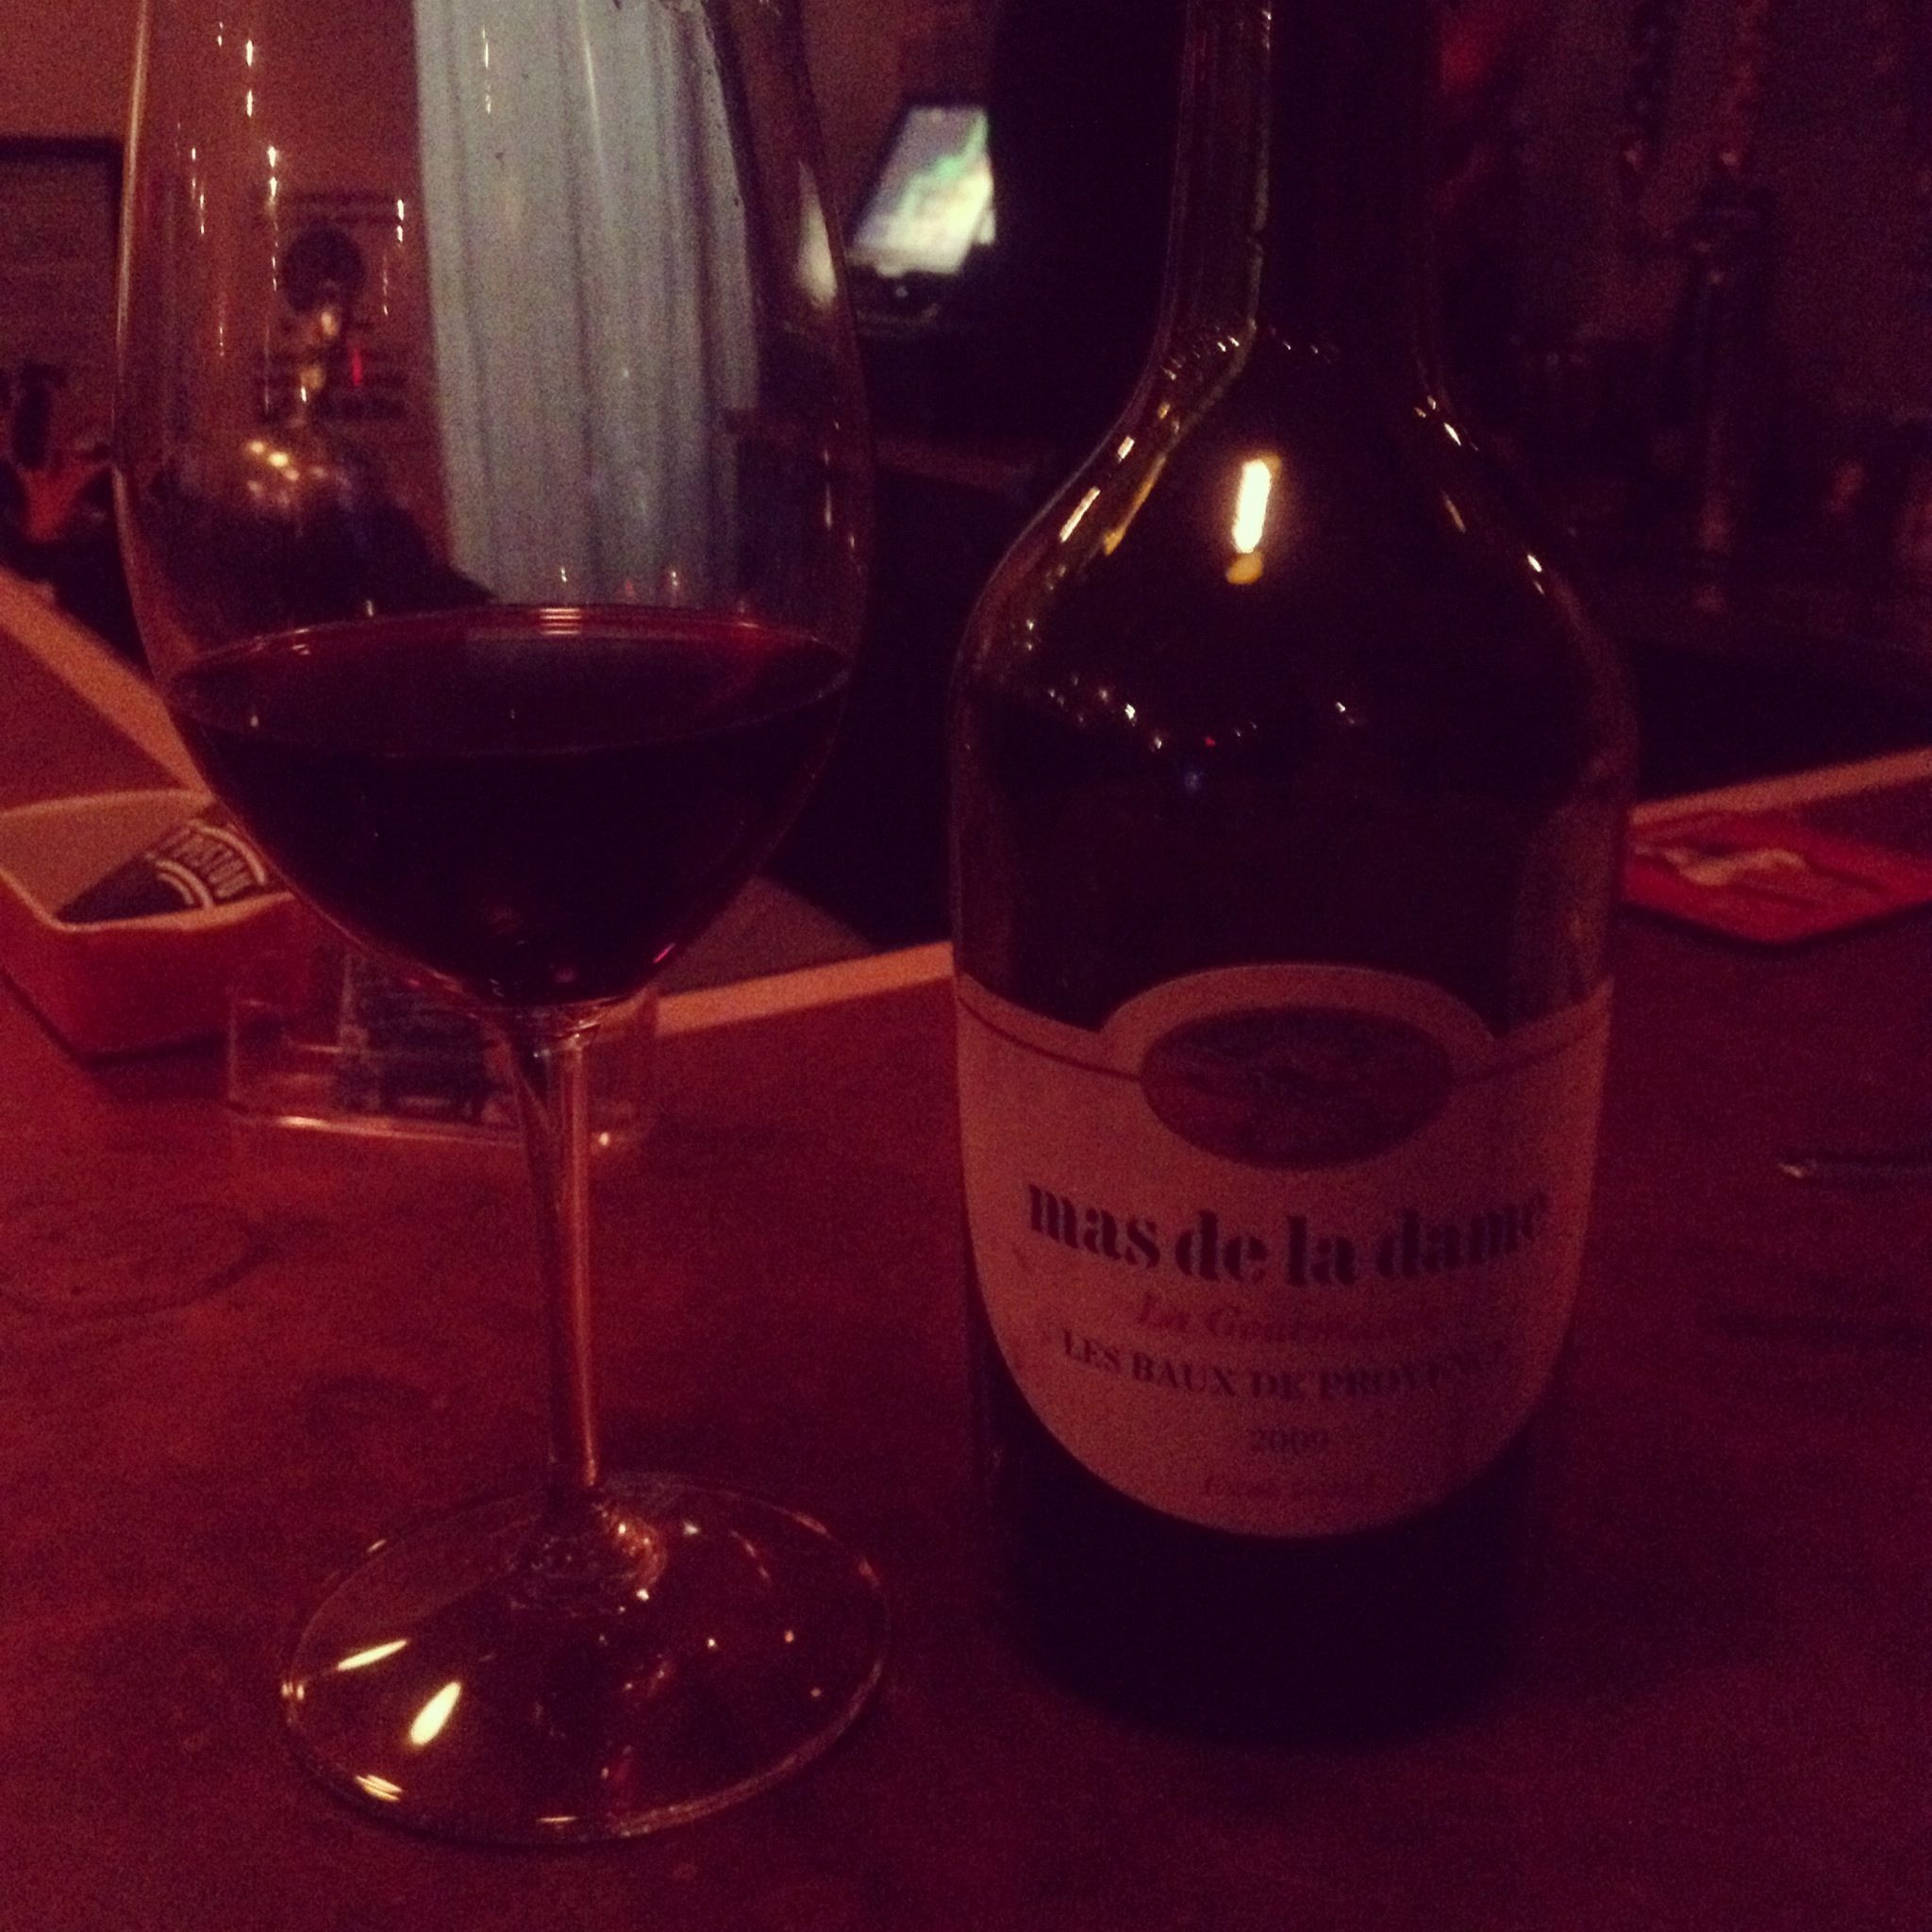 Mas De La Dame At Pistou In Burlington Vt 9 2 2012 Wine Bottle Bottle Drinks